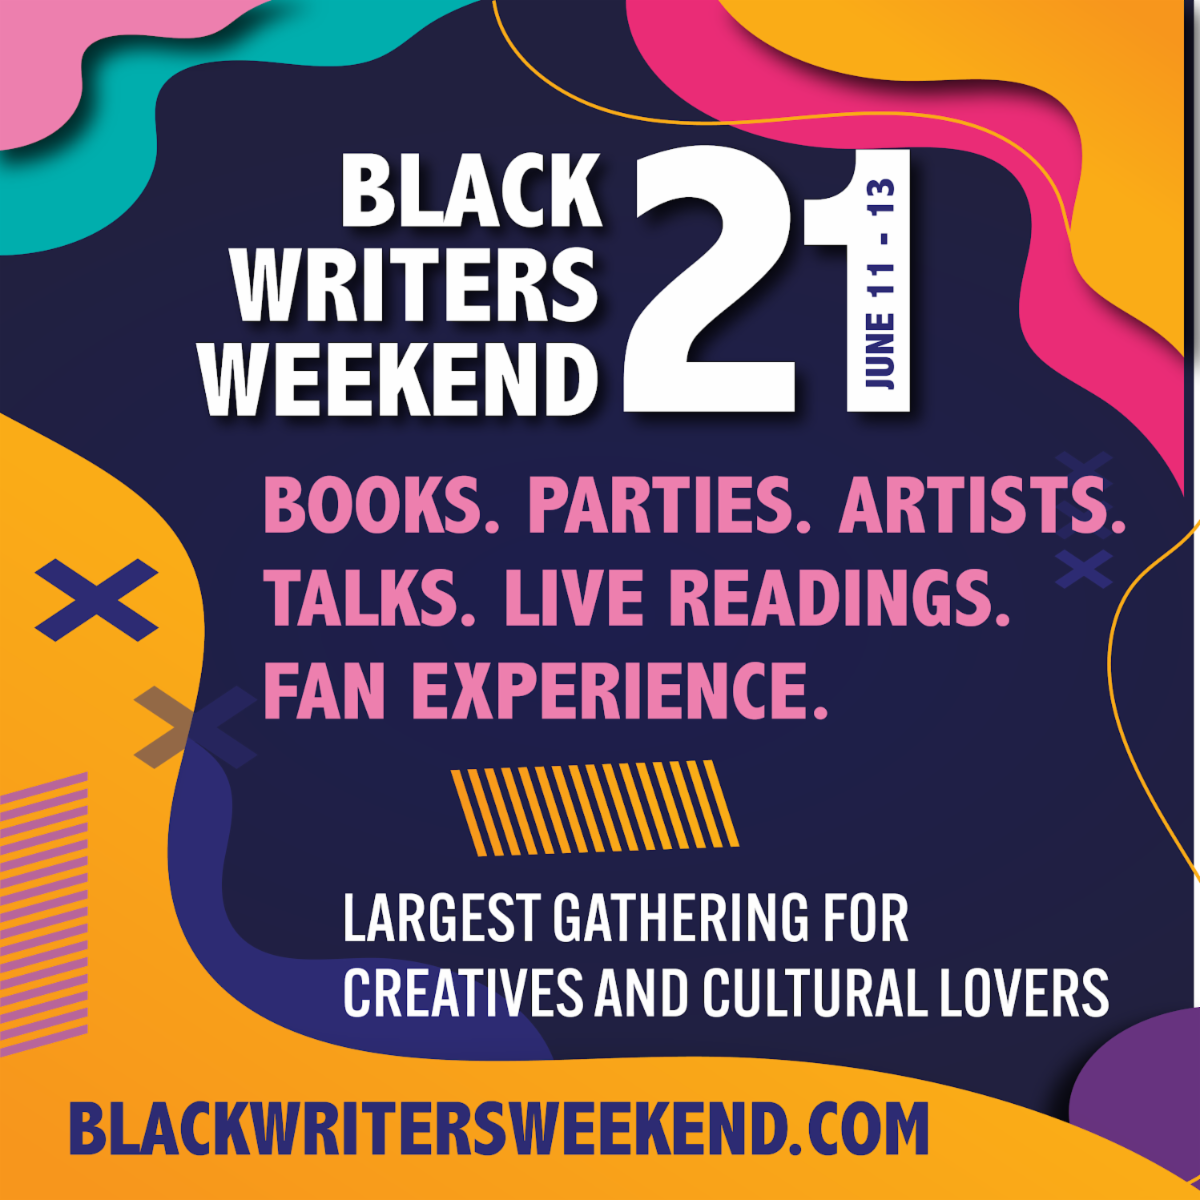 BLACK WRITERS WEEKEND POWERED BY BY AAMBC INC. RETURNS AS A HYBRID FESTIVAL